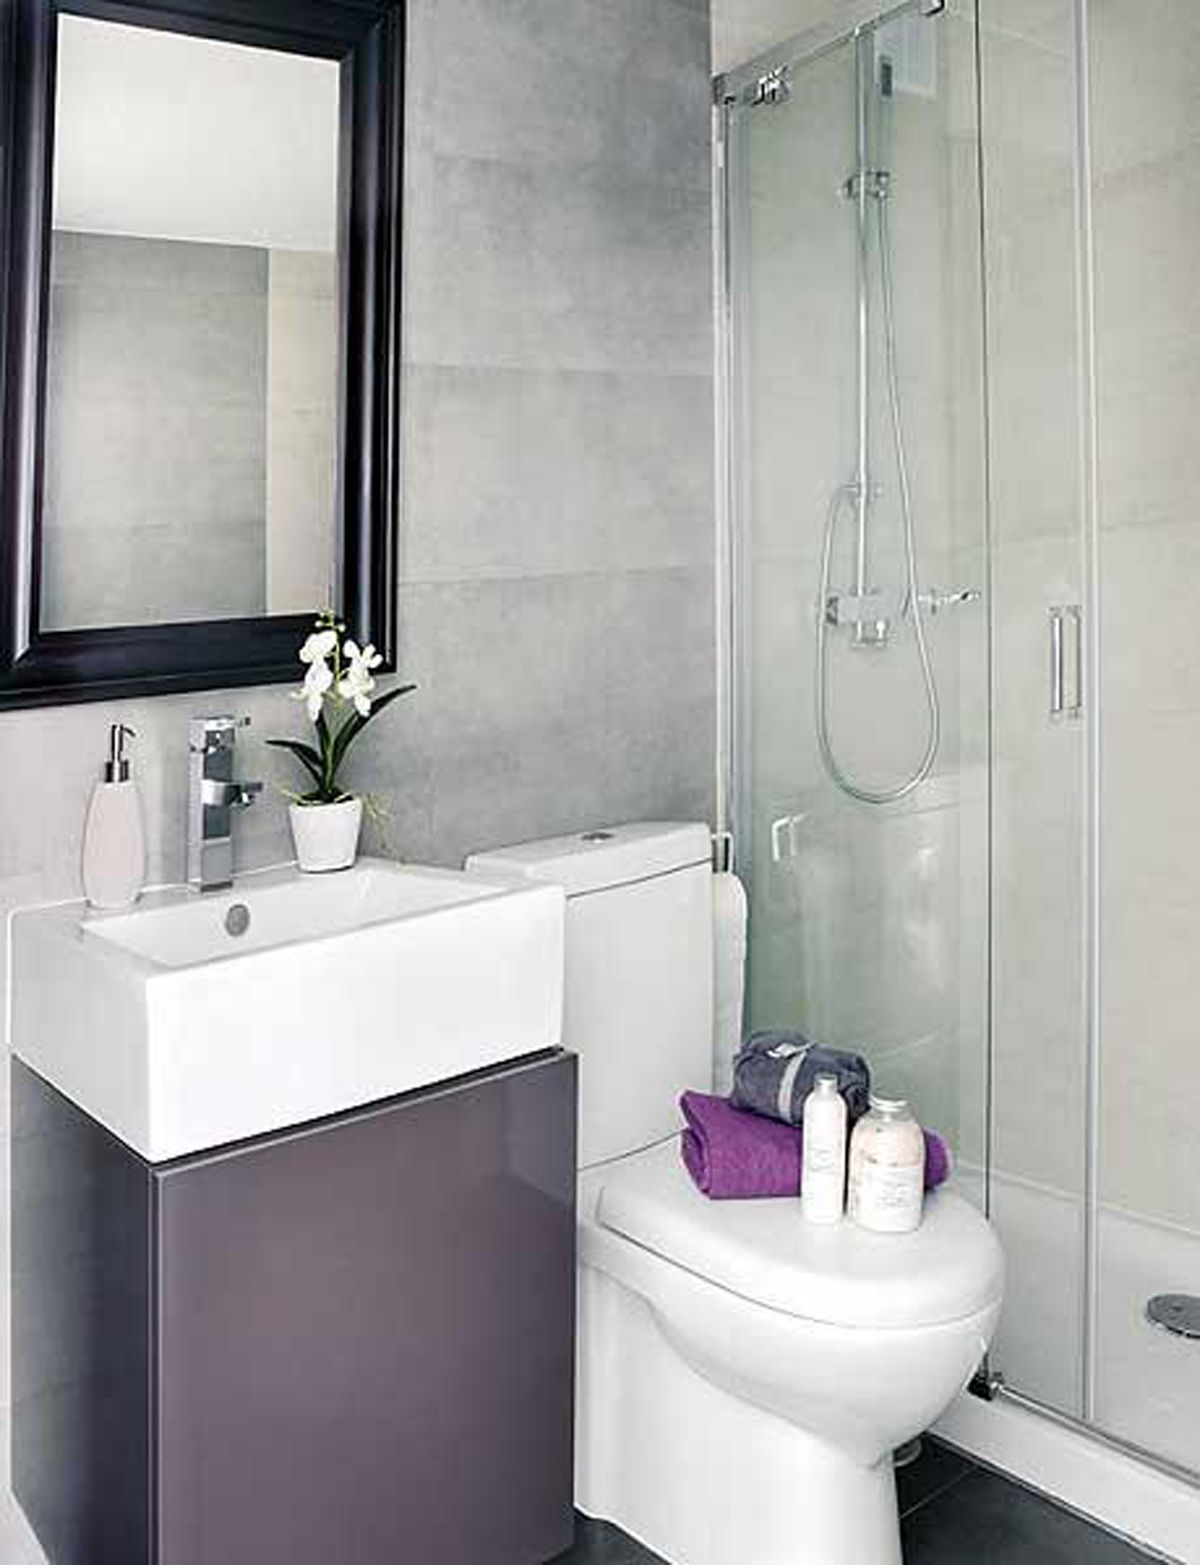 Toilet Design Ideas discover qanvast home design renovation remodelling furnishing ideas page 11 Apartment Bathroom Design